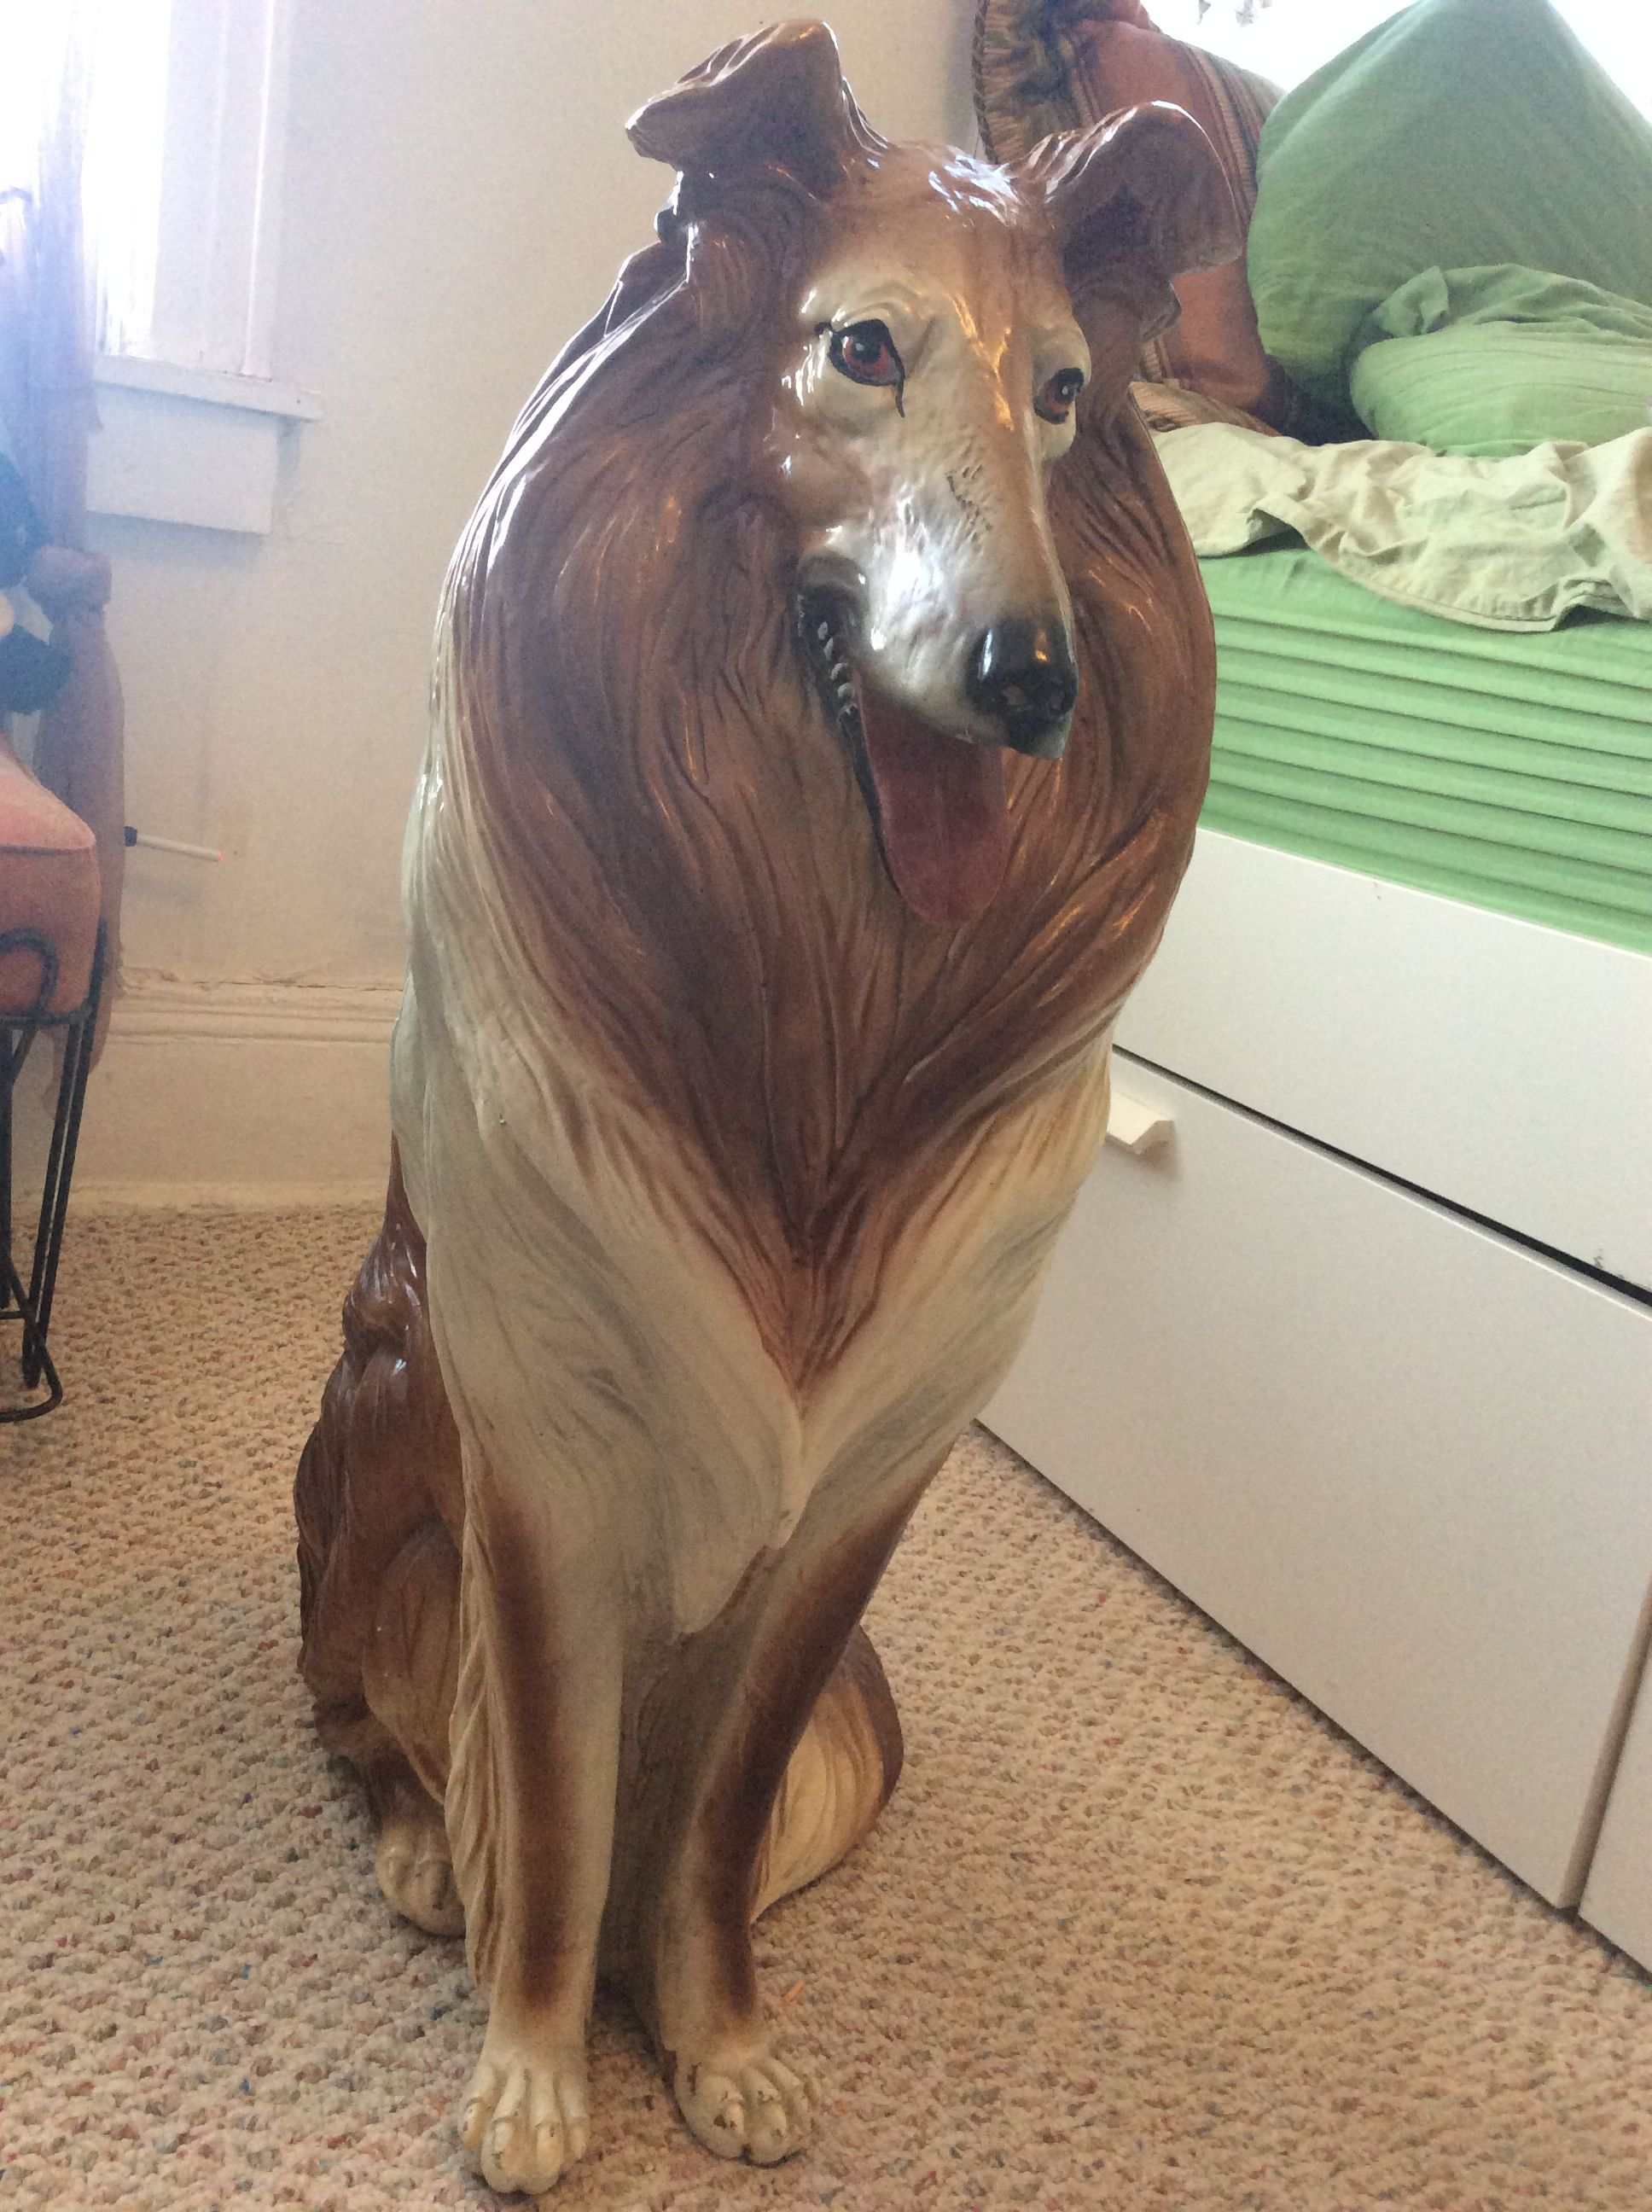 Collie Dog Life Full Size Statue By Marwal Ceramic For Sale